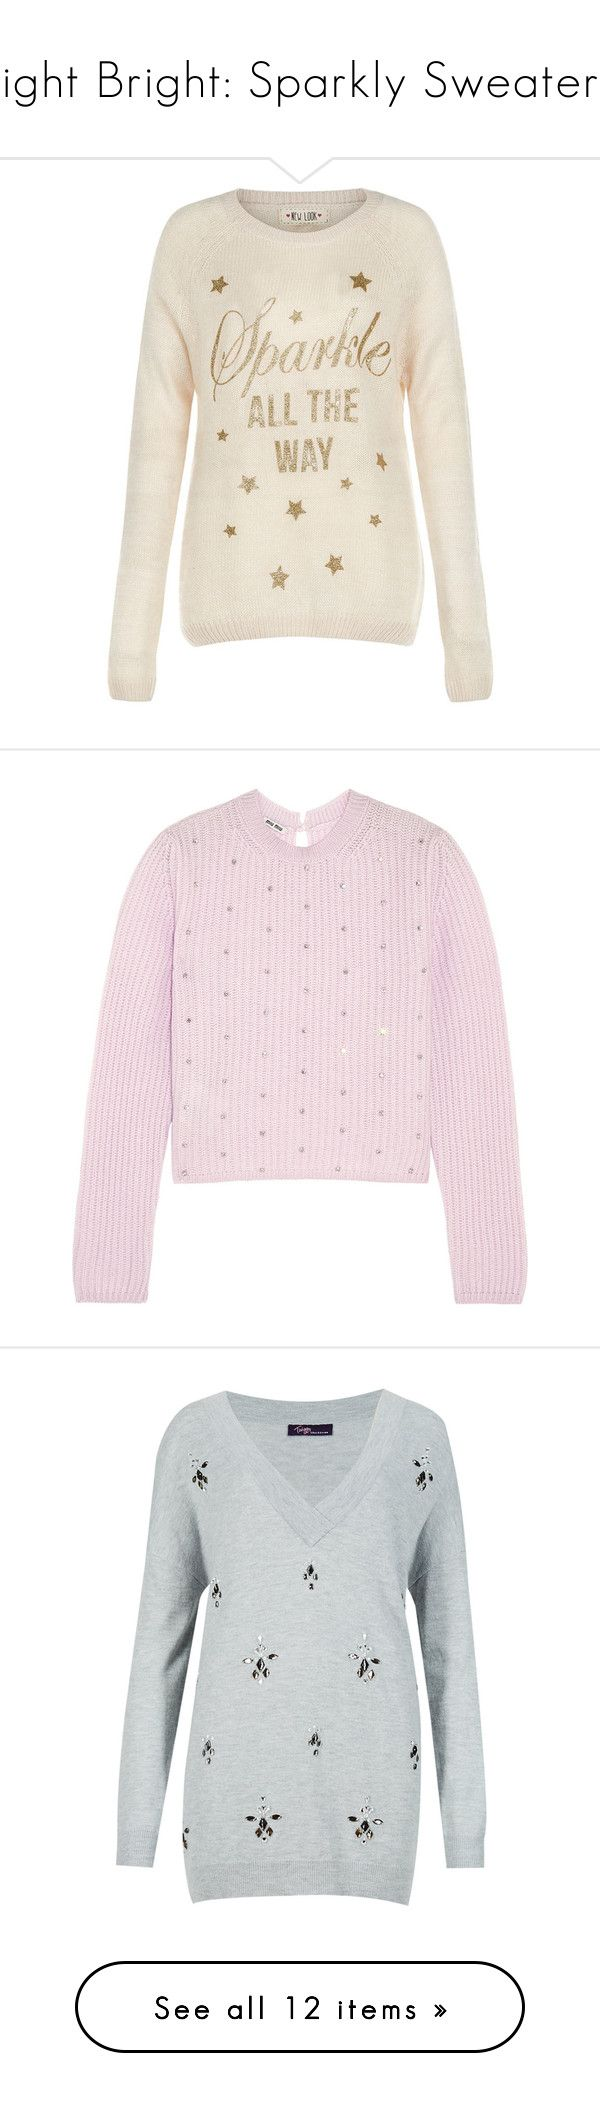 """""""Light Bright: Sparkly Sweaters"""" by polyvore-editorial ❤ liked on Polyvore featuring sparklysweaters, tops, sweaters, jumper, shirts, sparkle shirt, sparkly tops, longsleeve shirt, christmas sweater and stone top"""